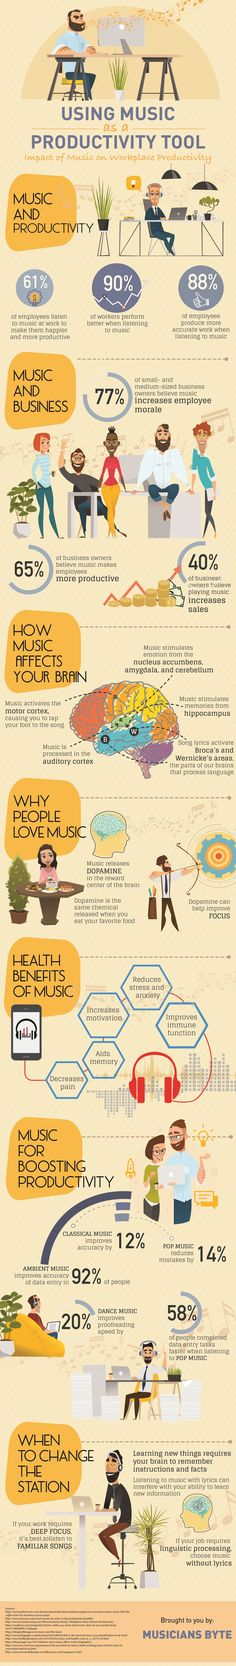 Using Music as a Productivity Tool